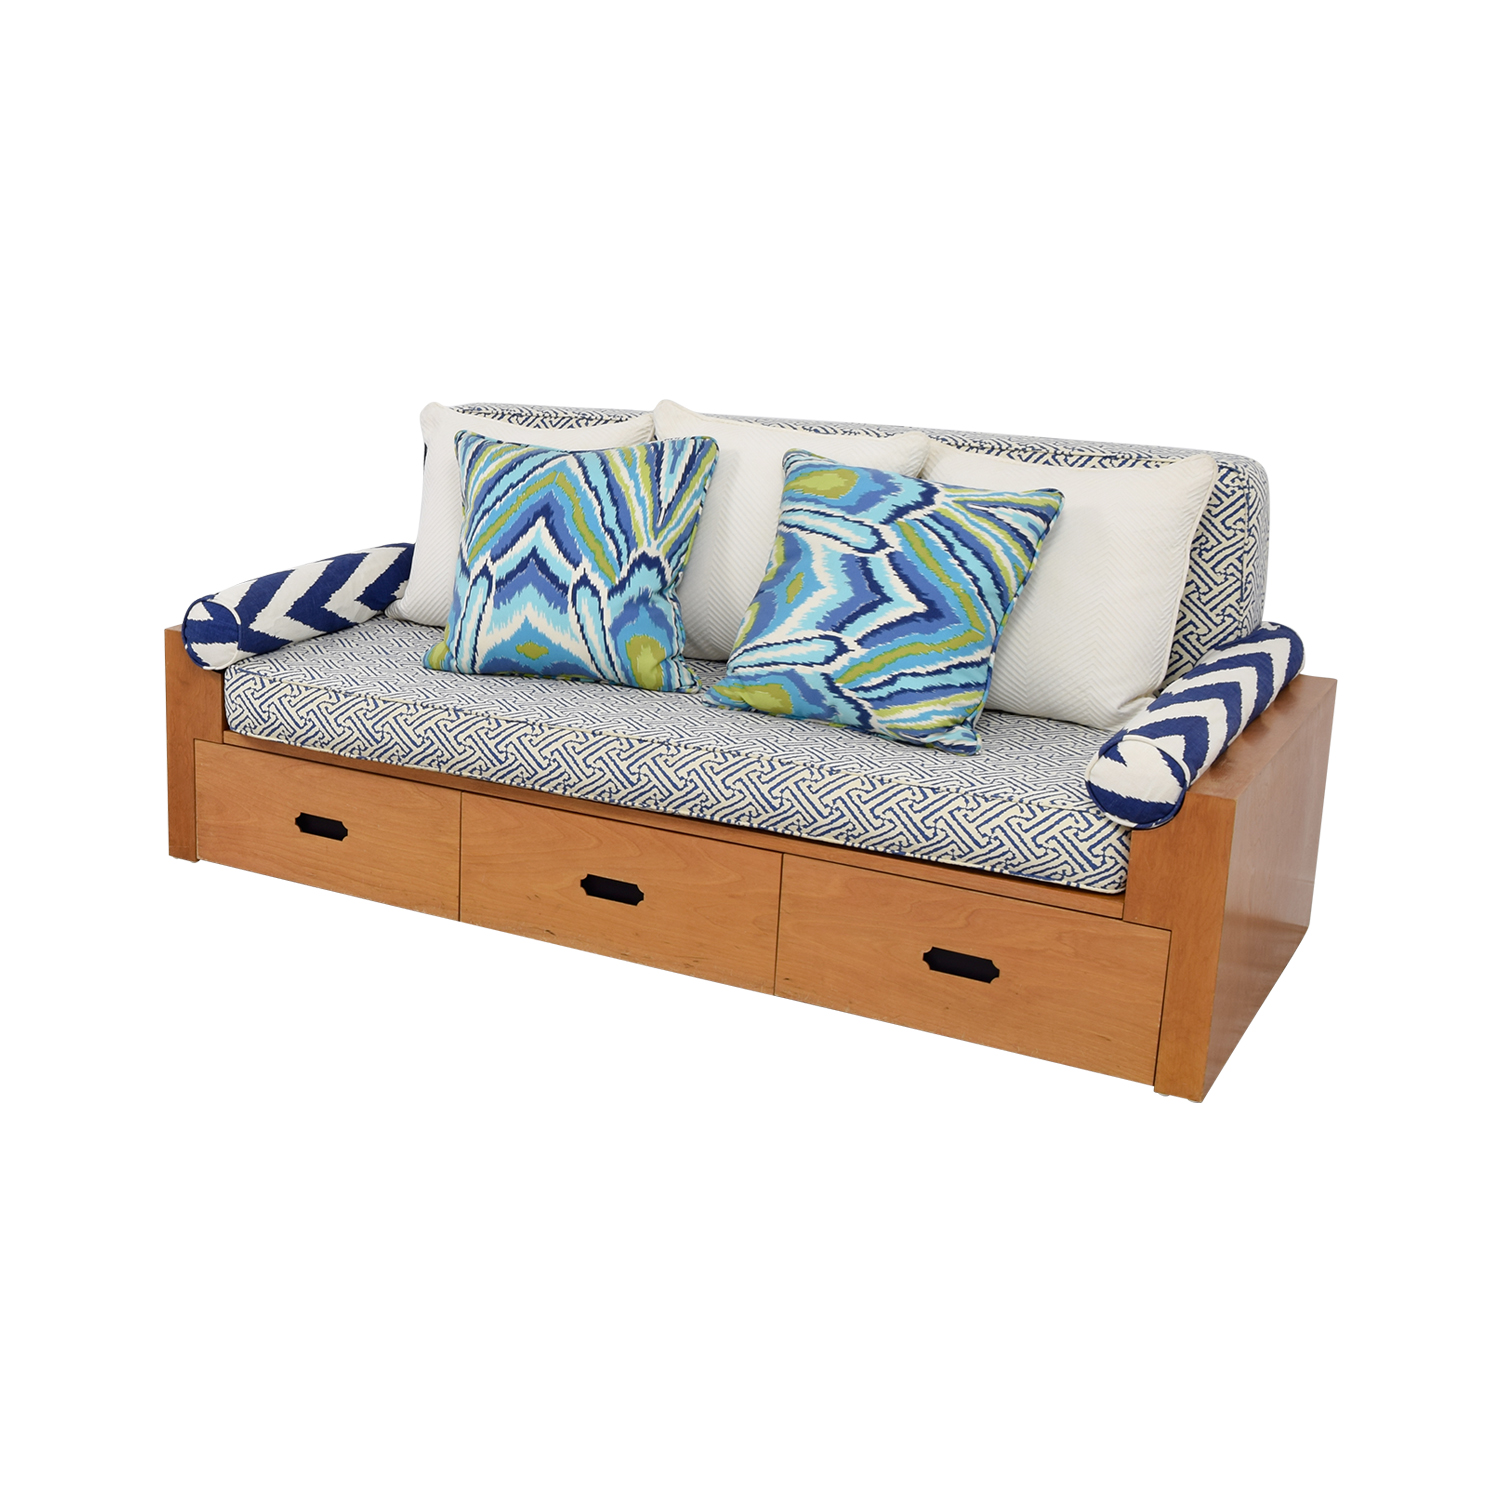 shop Custom Wood Daybed with Storage online